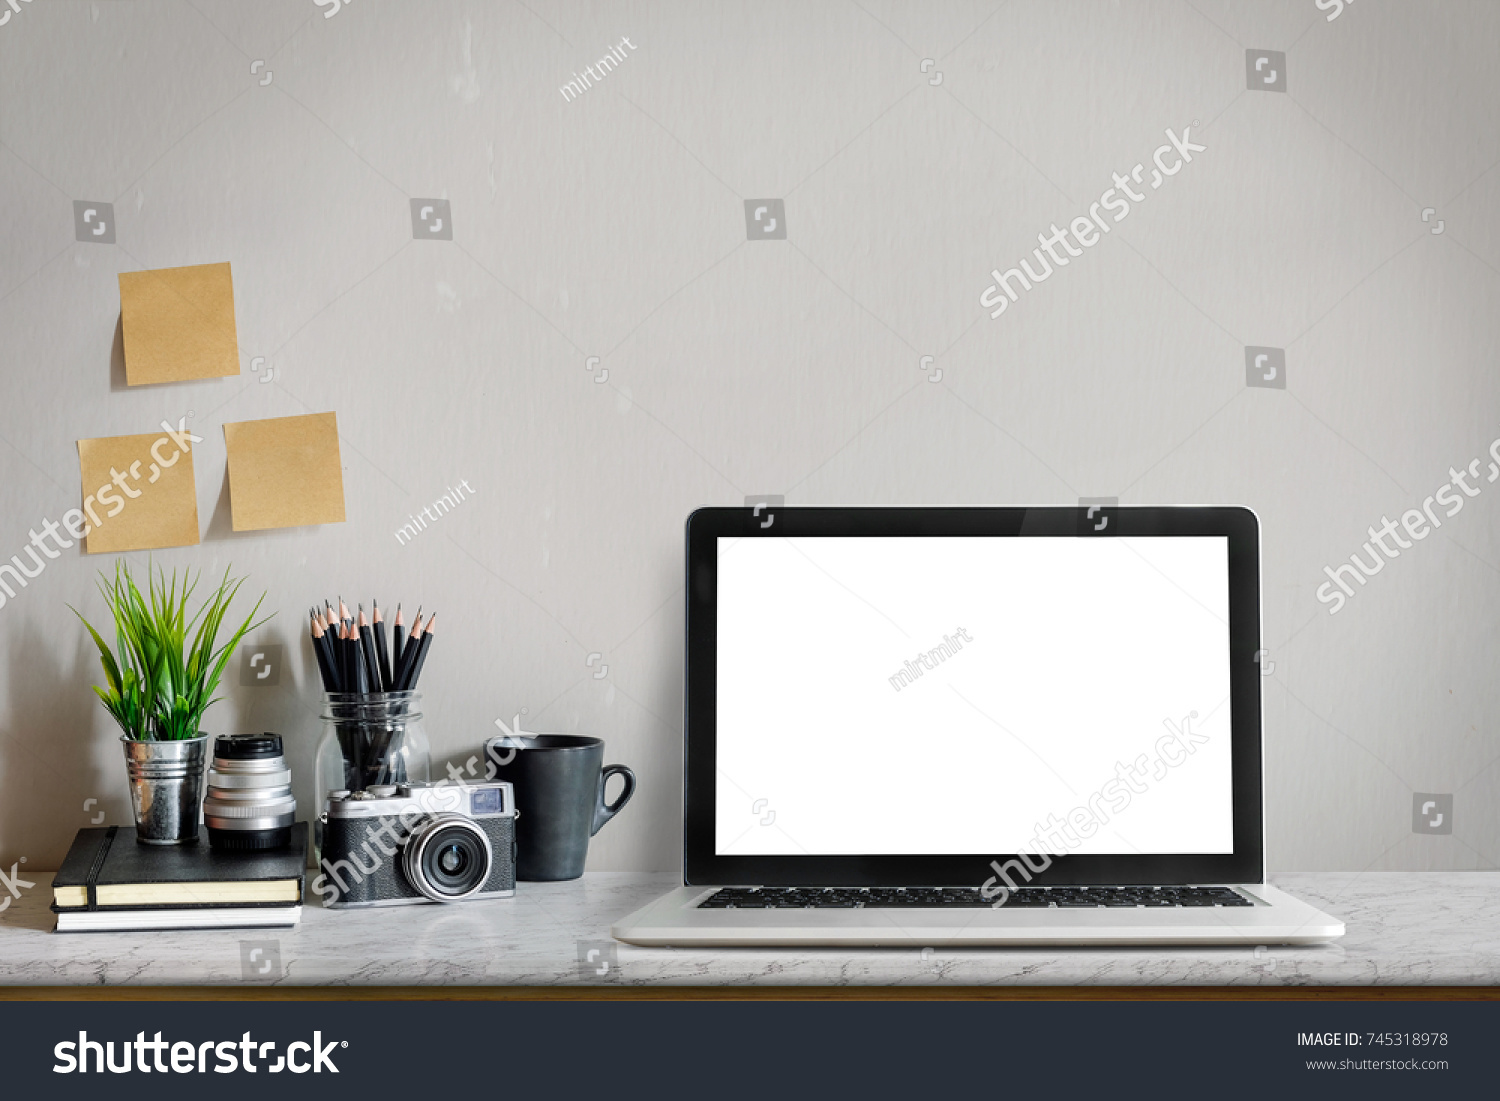 stylish home office computer room. Stylish Workplace Mockup. Home Office Workspace With Laptop Computer, Vintage Camera And Supplies Computer Room